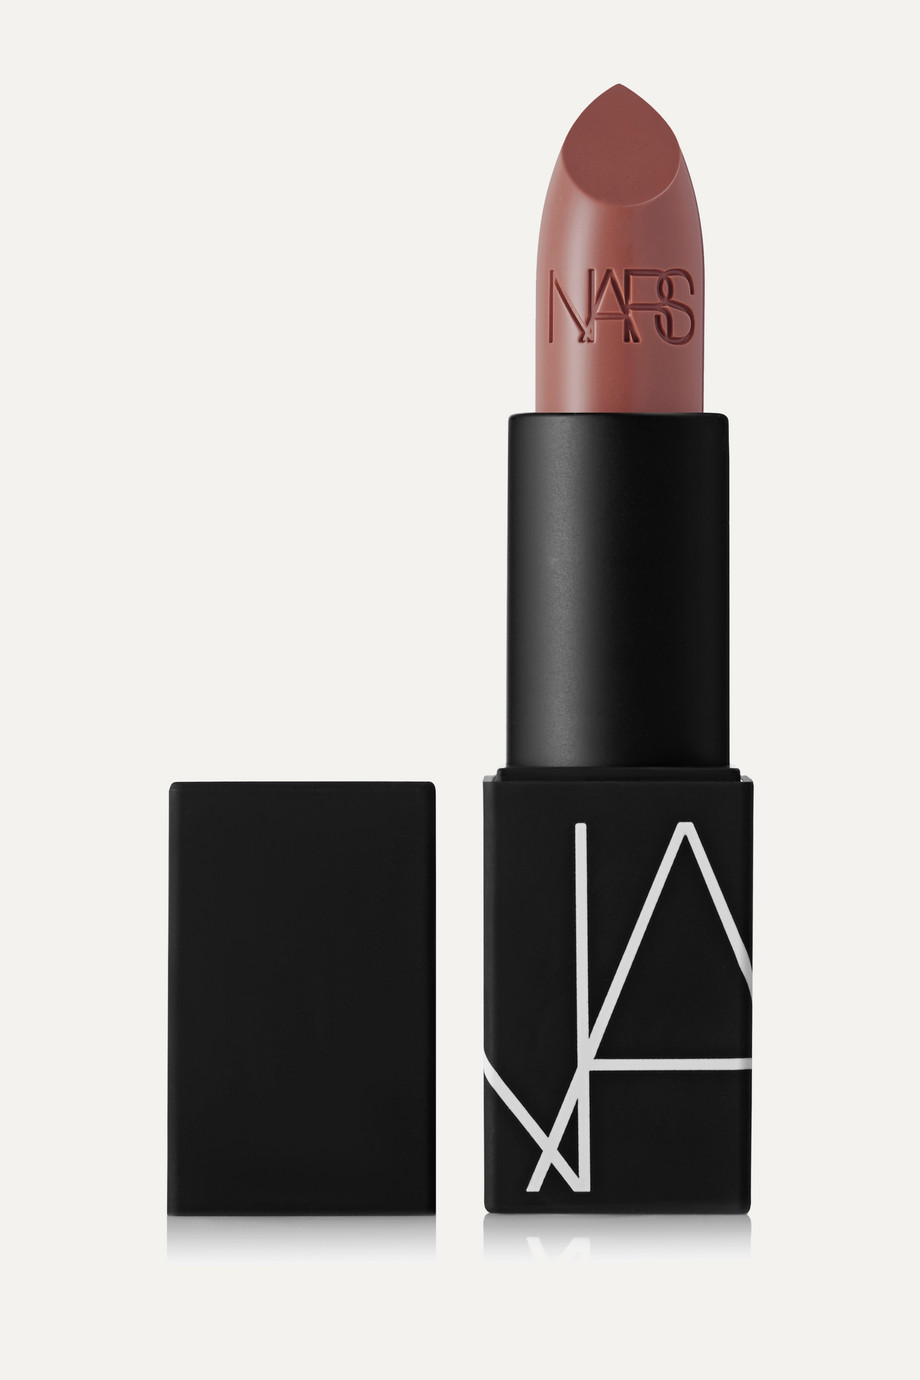 NARS Lipstick - Erotic Adventure